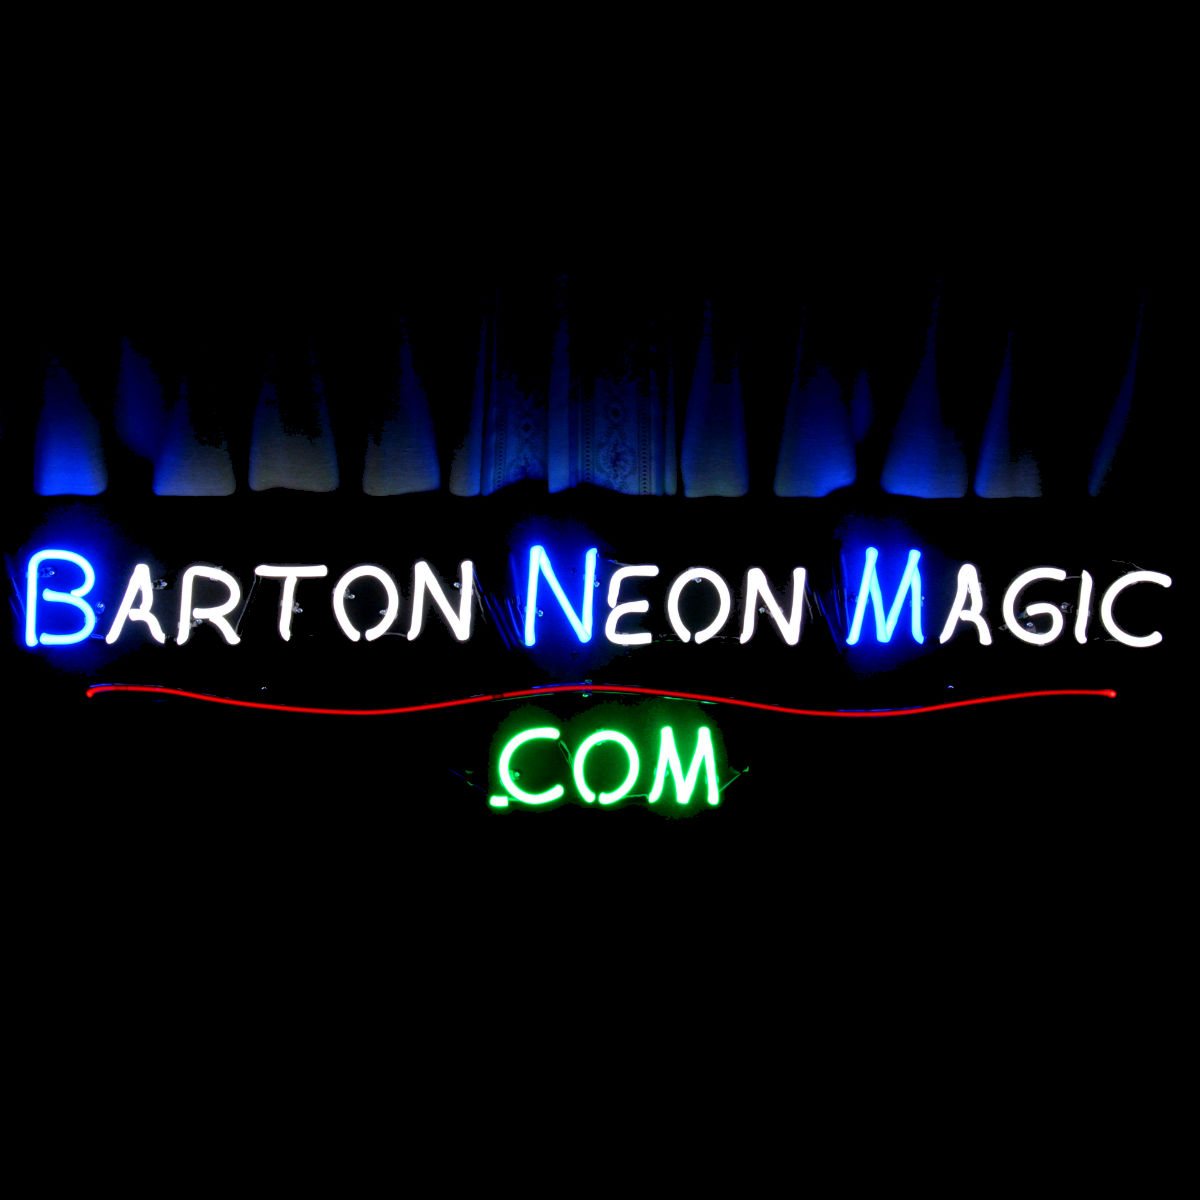 BartonNeonMagic.com - THE ULTIMATE in Designer Neon Lighting